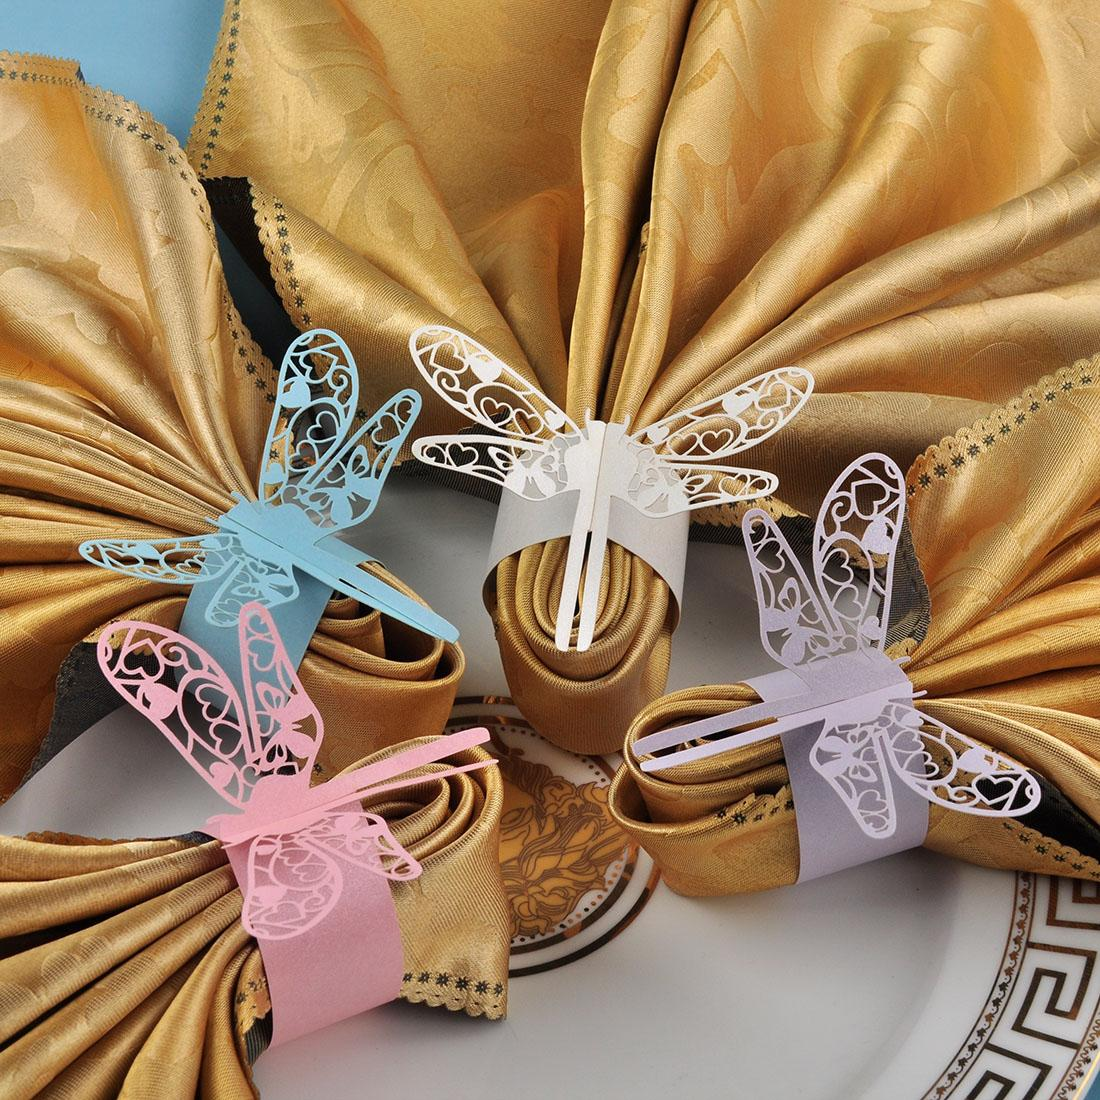 Pearl Paper Home Decor Stock Product India Napkin Rings: Laser Cut Hollow Dragonfly Paper Napkin Rings Wraps For